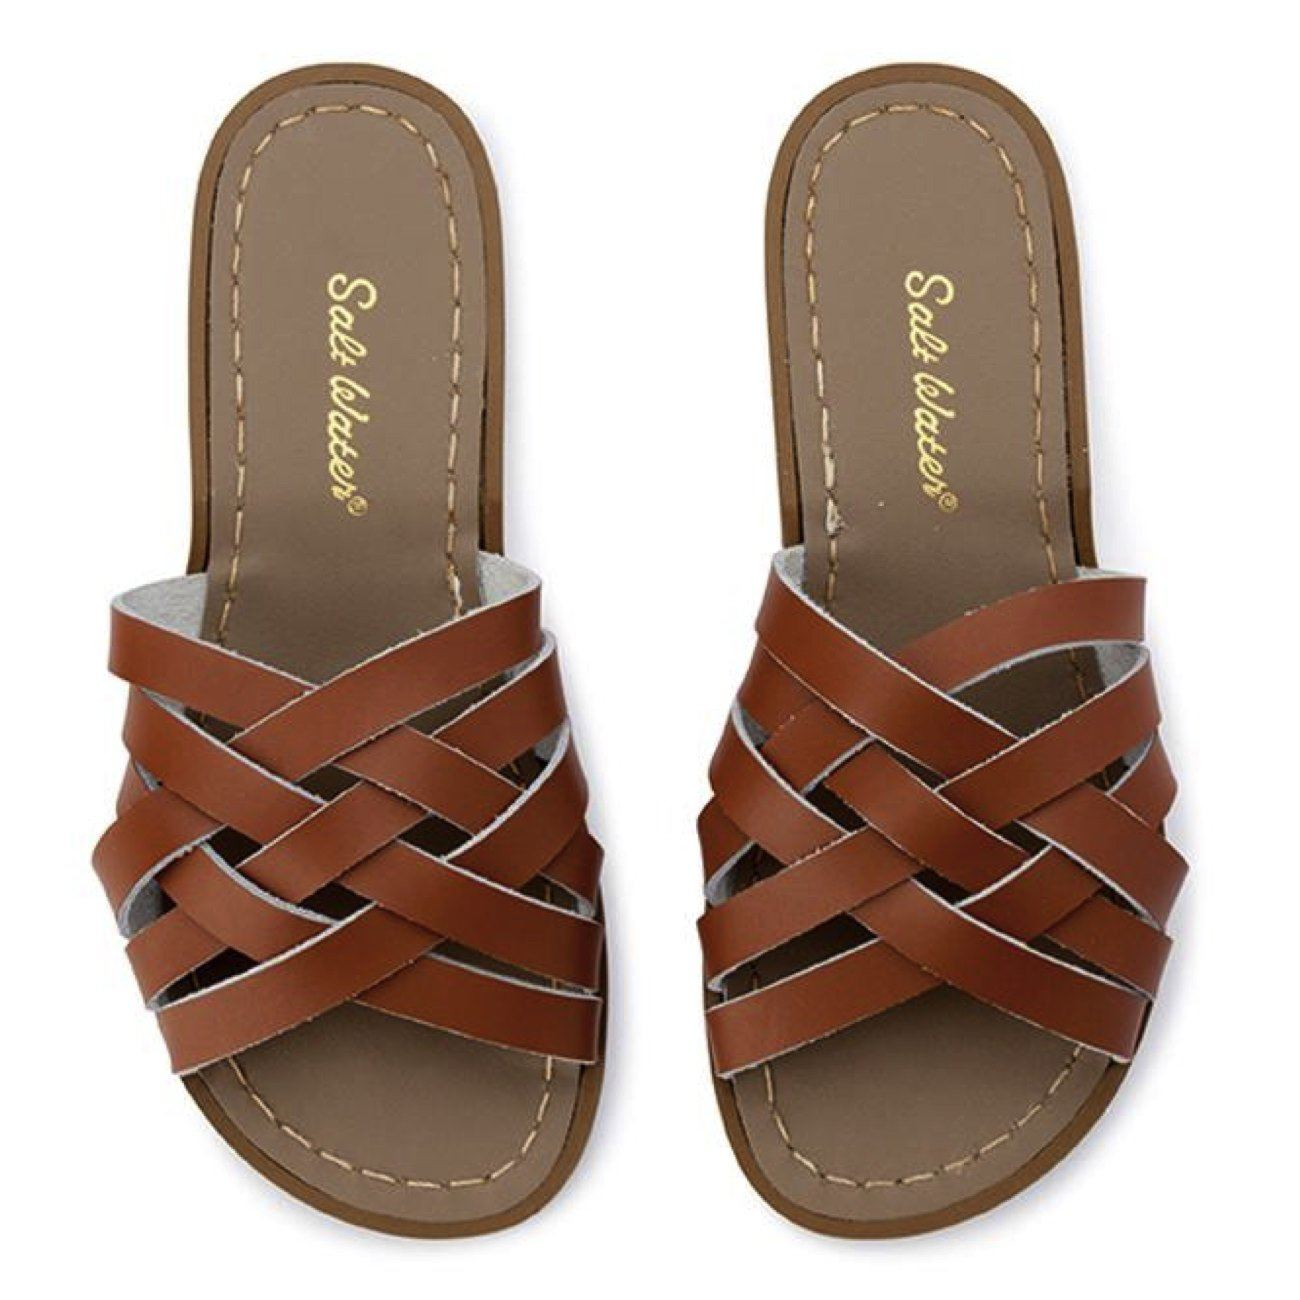 Salt Water Sandals, Retro Slide, Adult, Tan Sandals Salt Water Sandals Tan A4